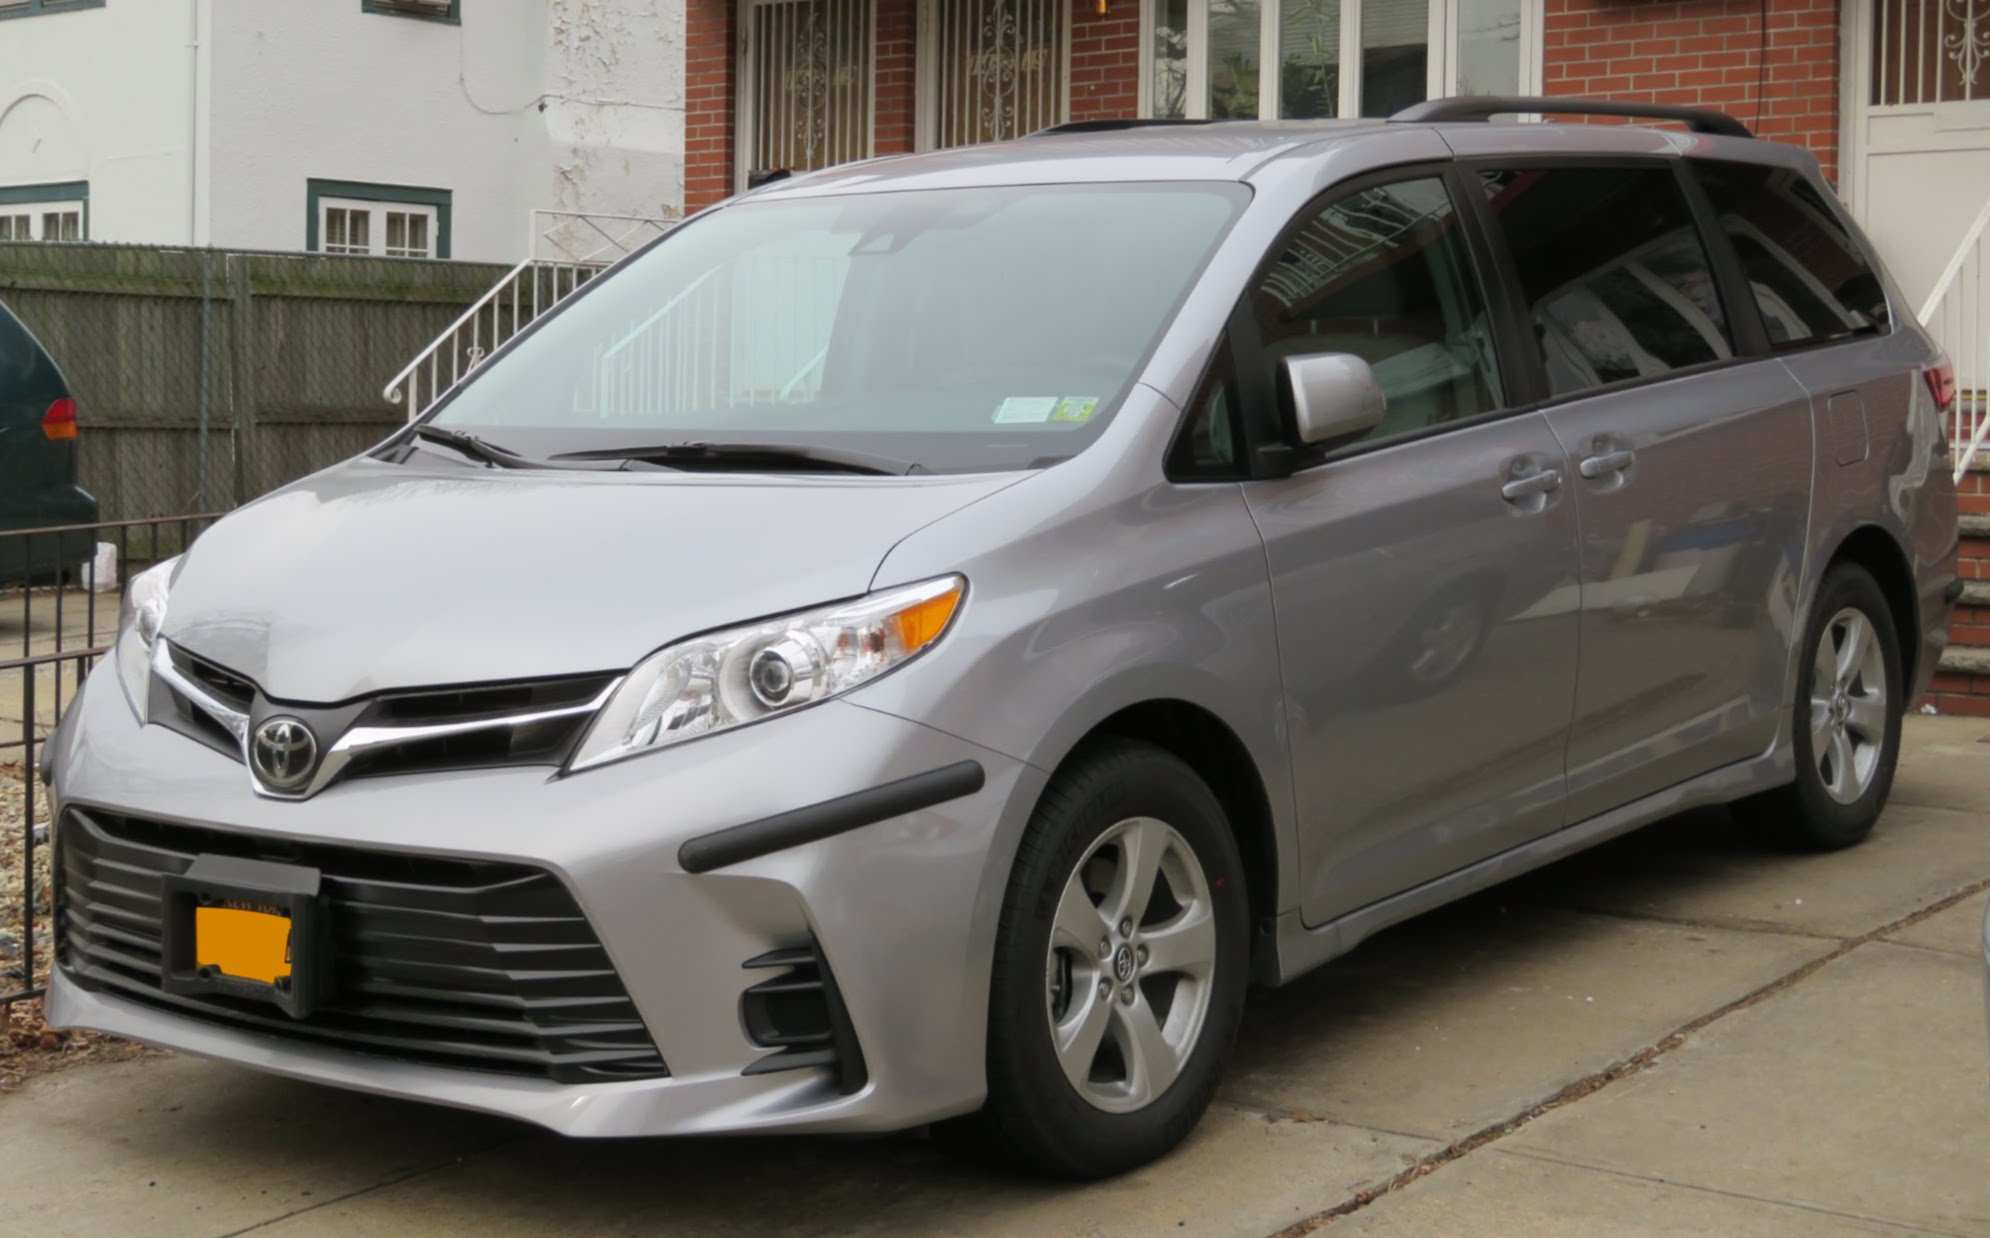 29 Great The Toyota 2019 V6 Release Date Interior for The Toyota 2019 V6 Release Date